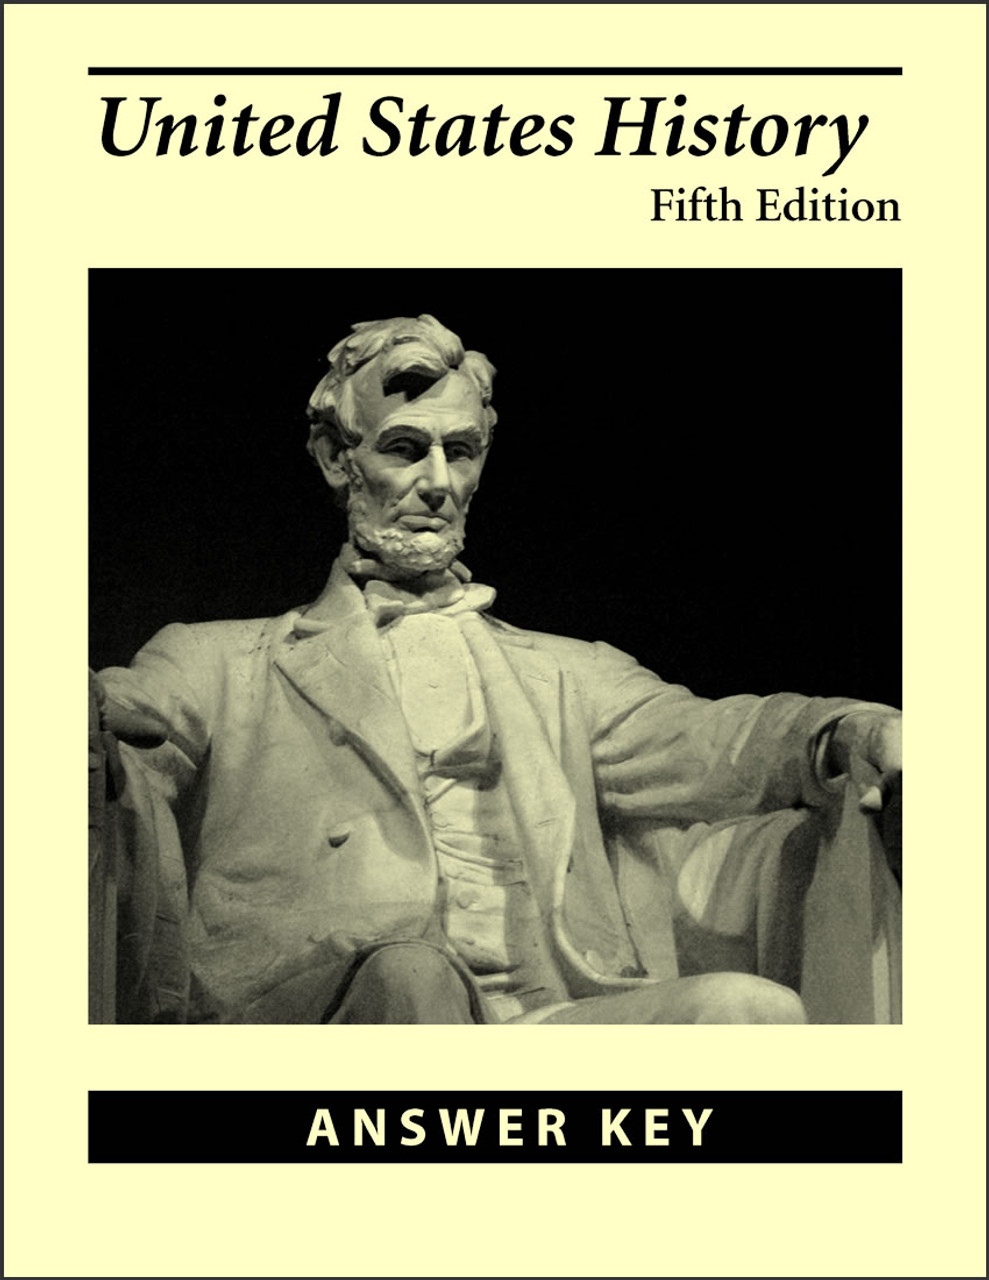 United States History, 5th edition - Answer Key